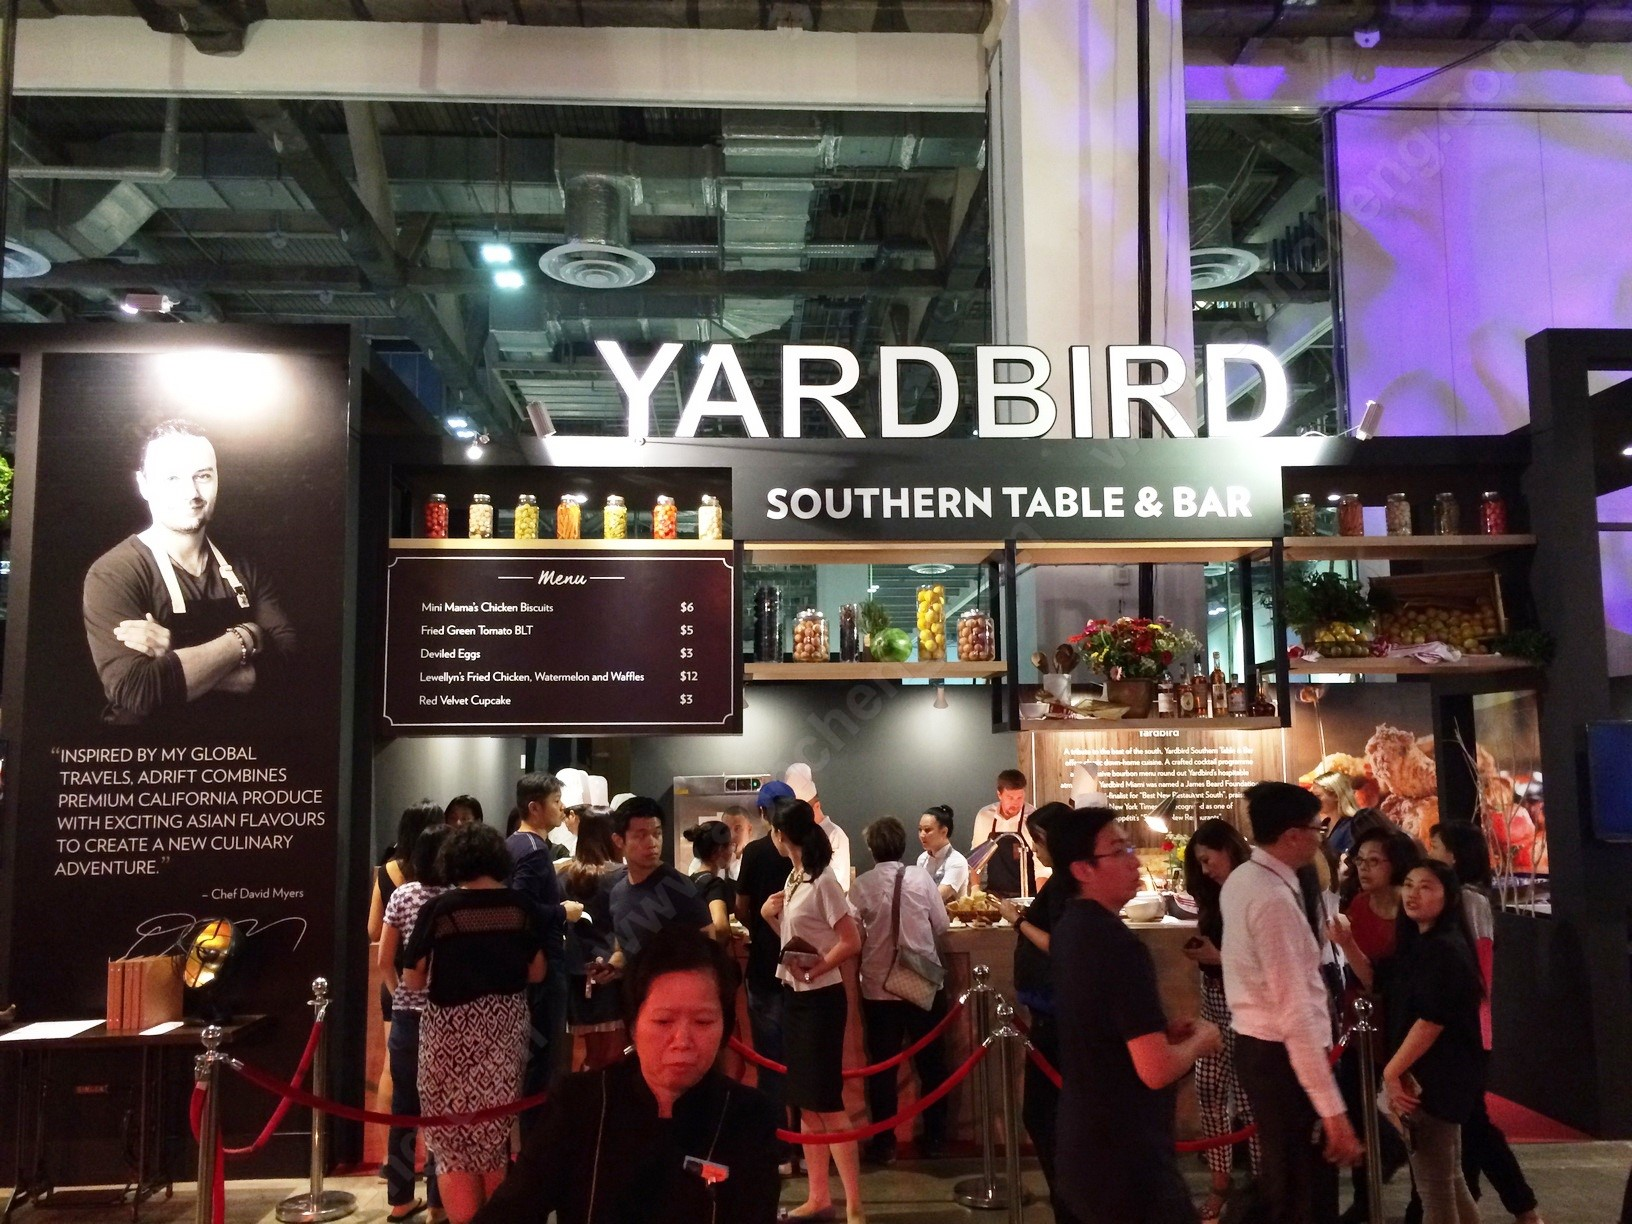 19._Yardbird_Southern_Table_&_Bar